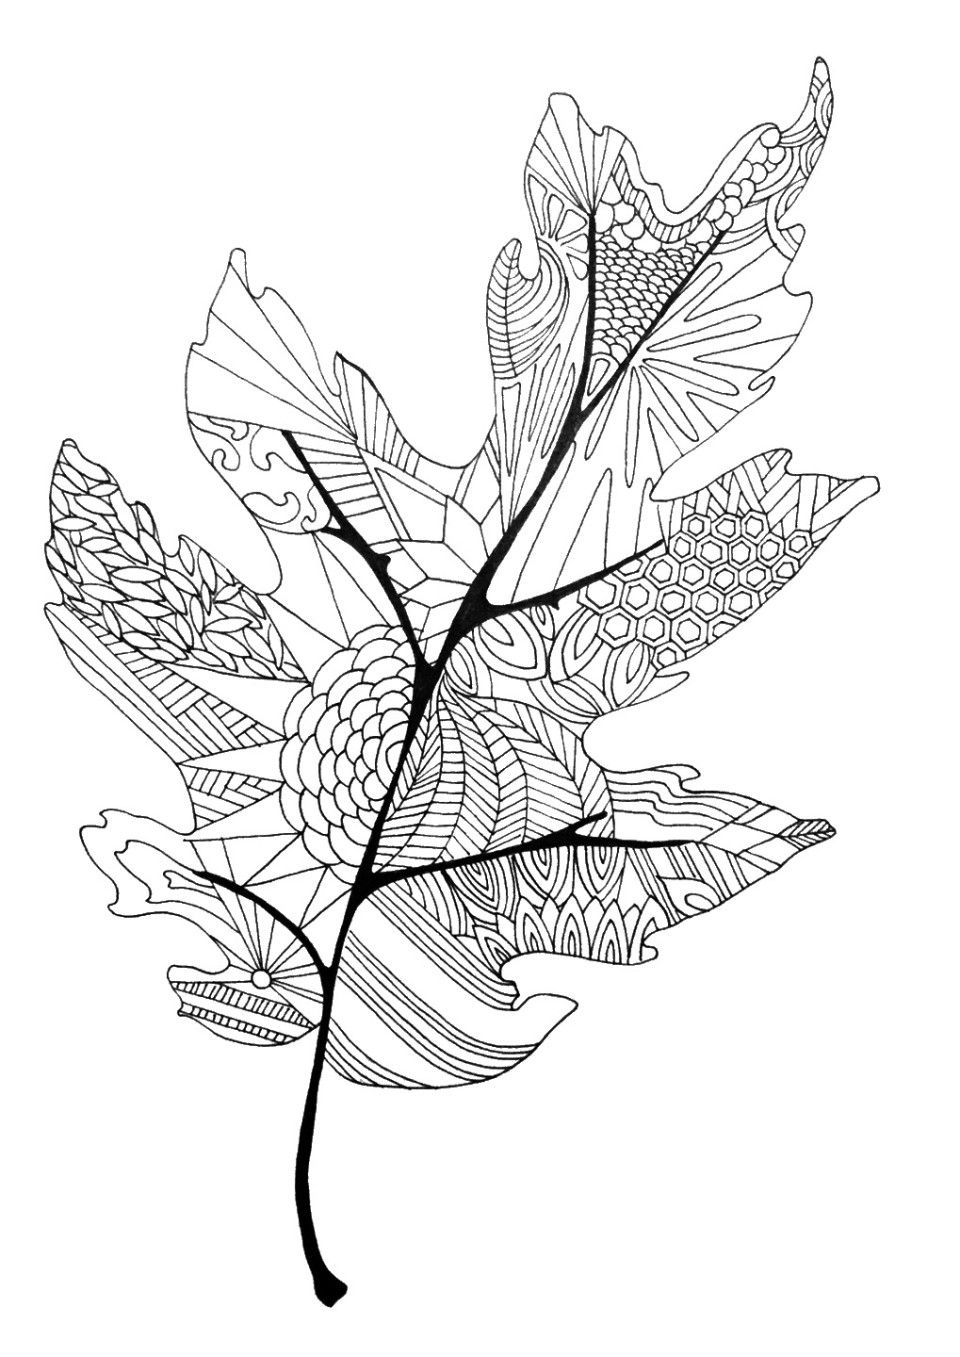 Coloring in the lines printable what nots Leaf